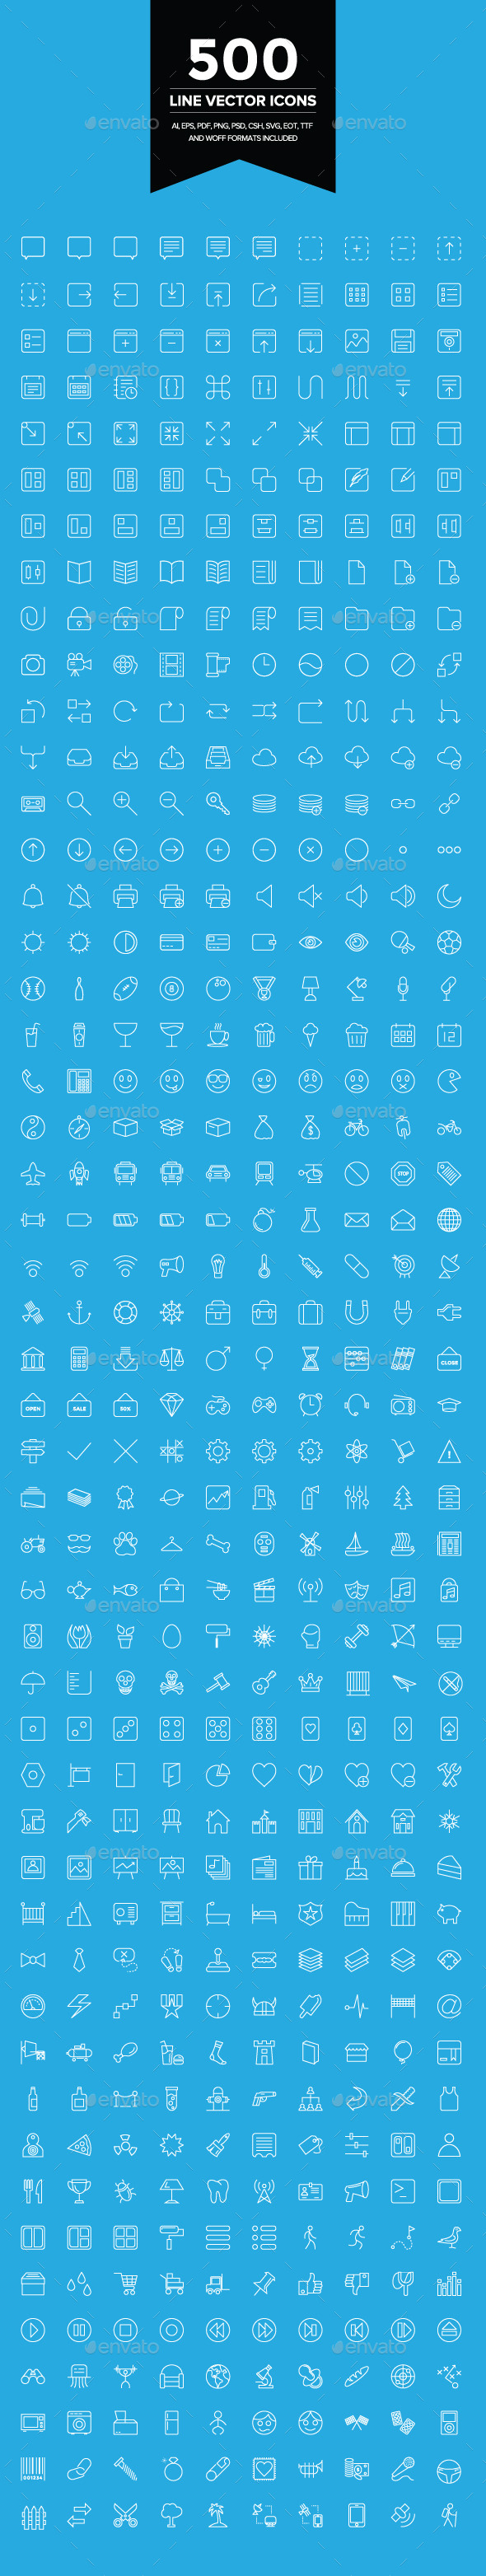 GraphicRiver 500 Line Vector Icons 9106505